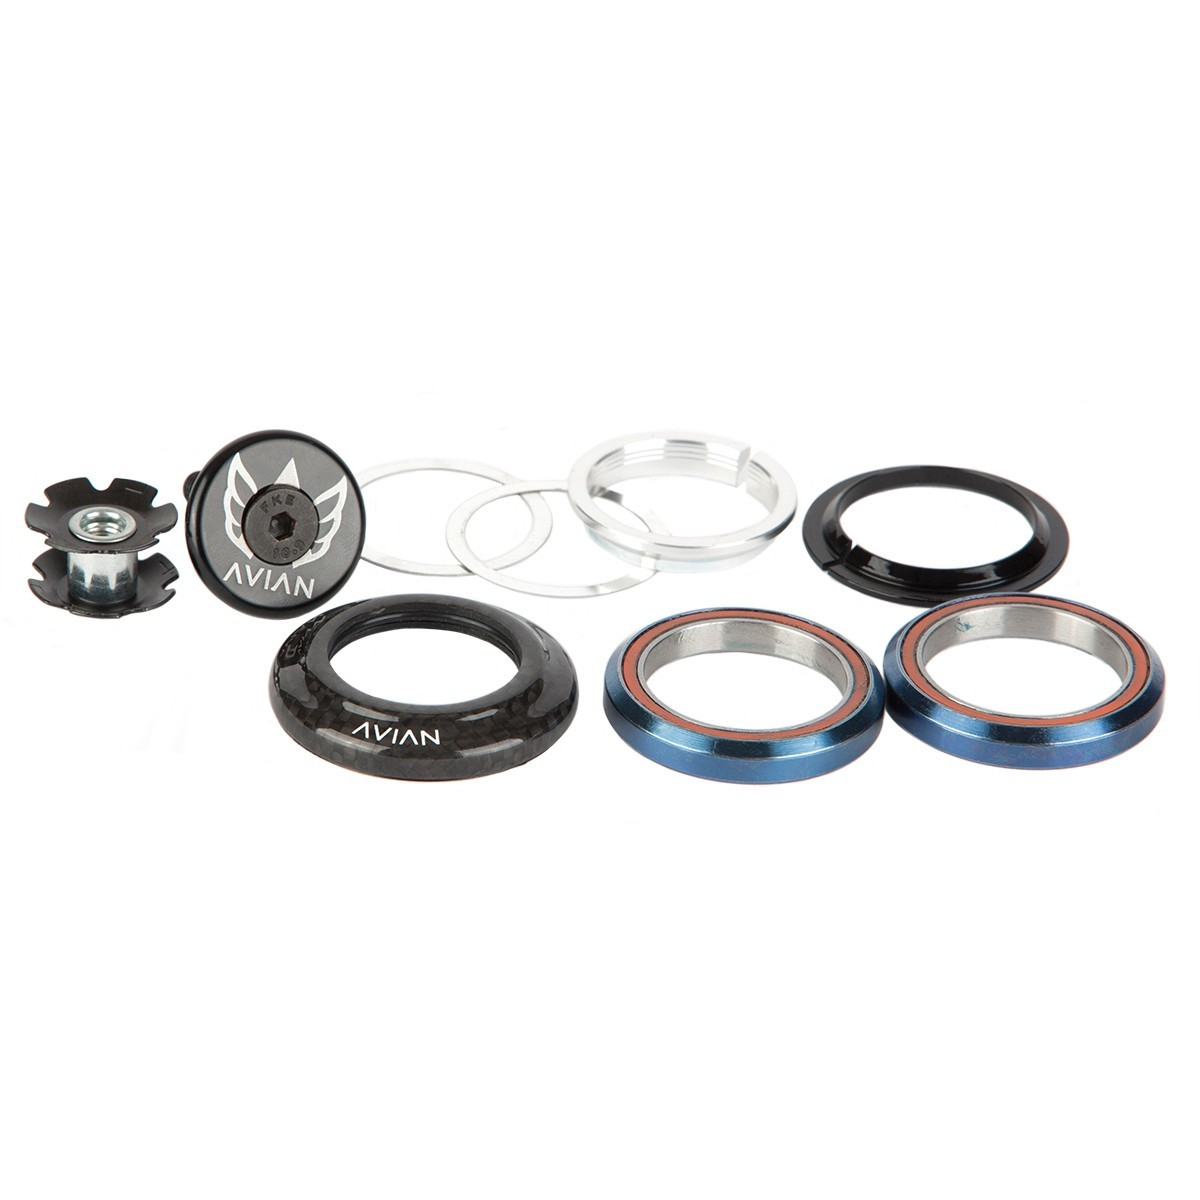 avian-carbon-integrated-headset-1-18-to-1-step-down